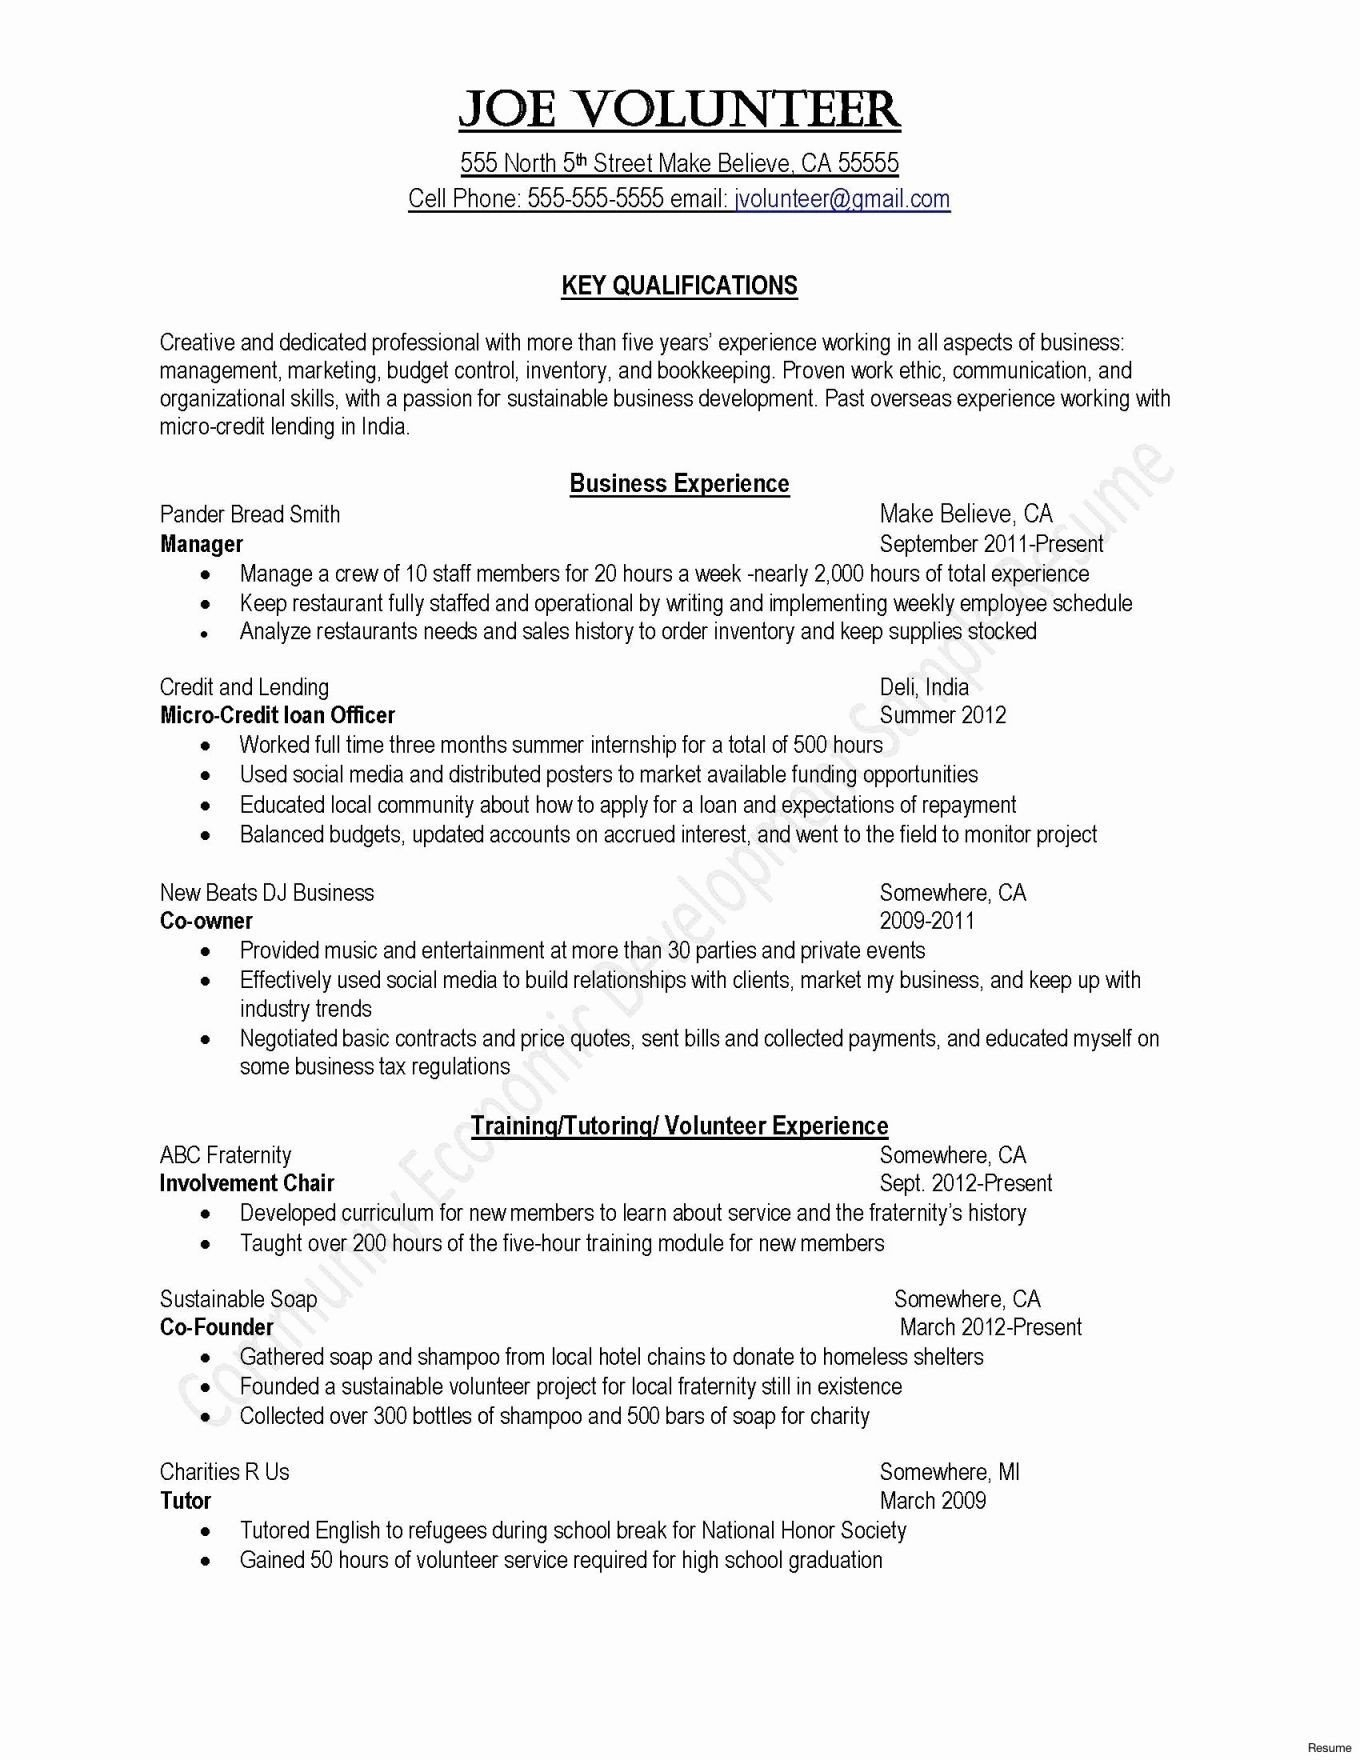 Free Health Educa Education Com Worksheets On Life Skills Worksheets Throughout The Center For Applied Research In Education Worksheets Answers